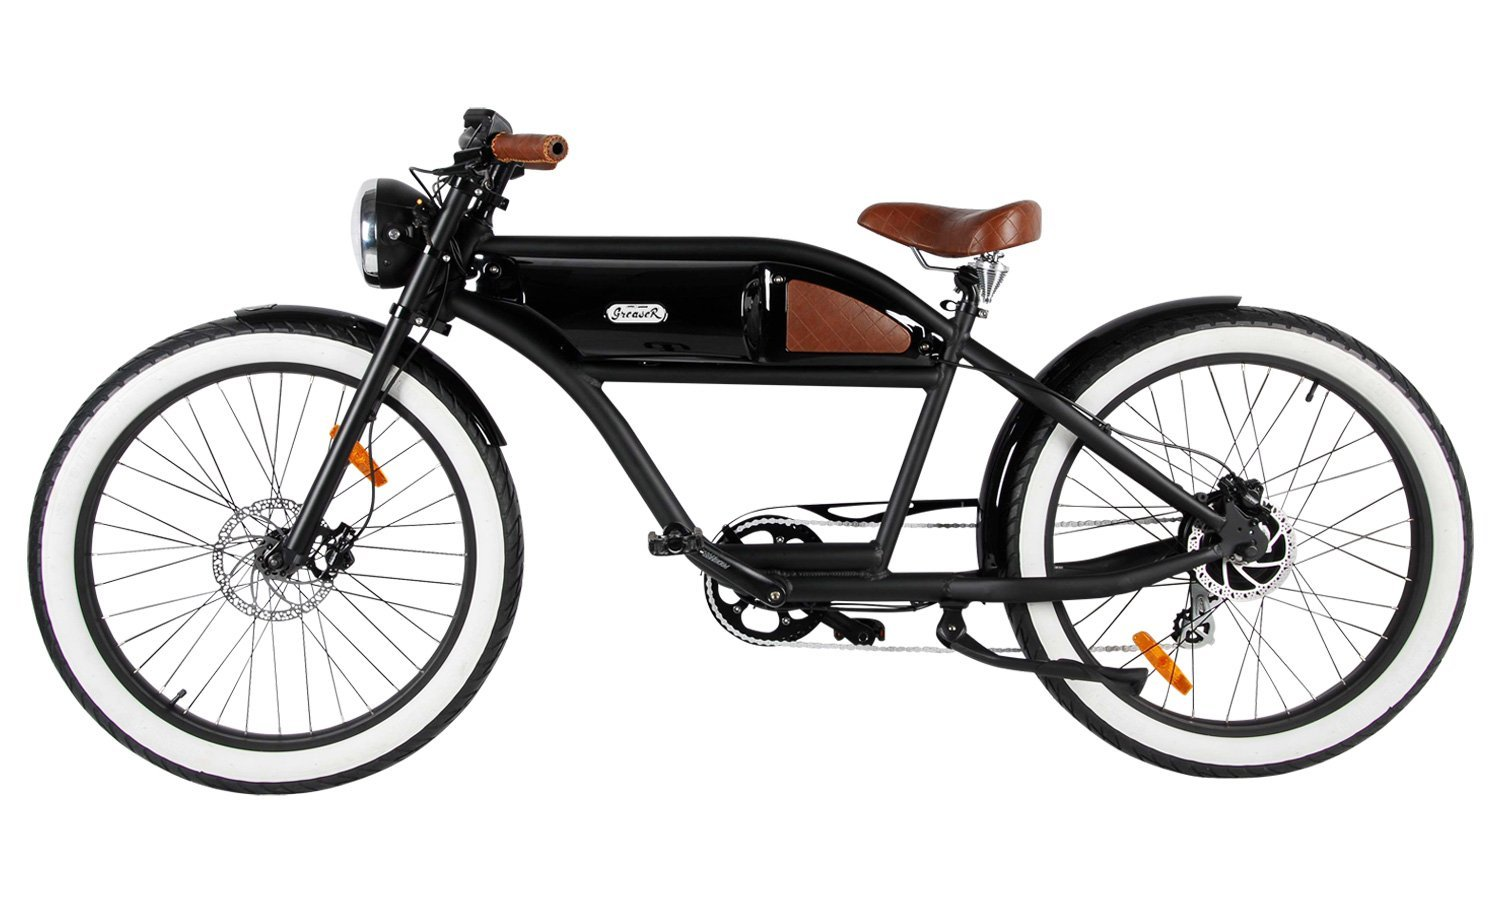 greaser the vintage e bike black with glossy black tank 500 watt all classic cycle en. Black Bedroom Furniture Sets. Home Design Ideas